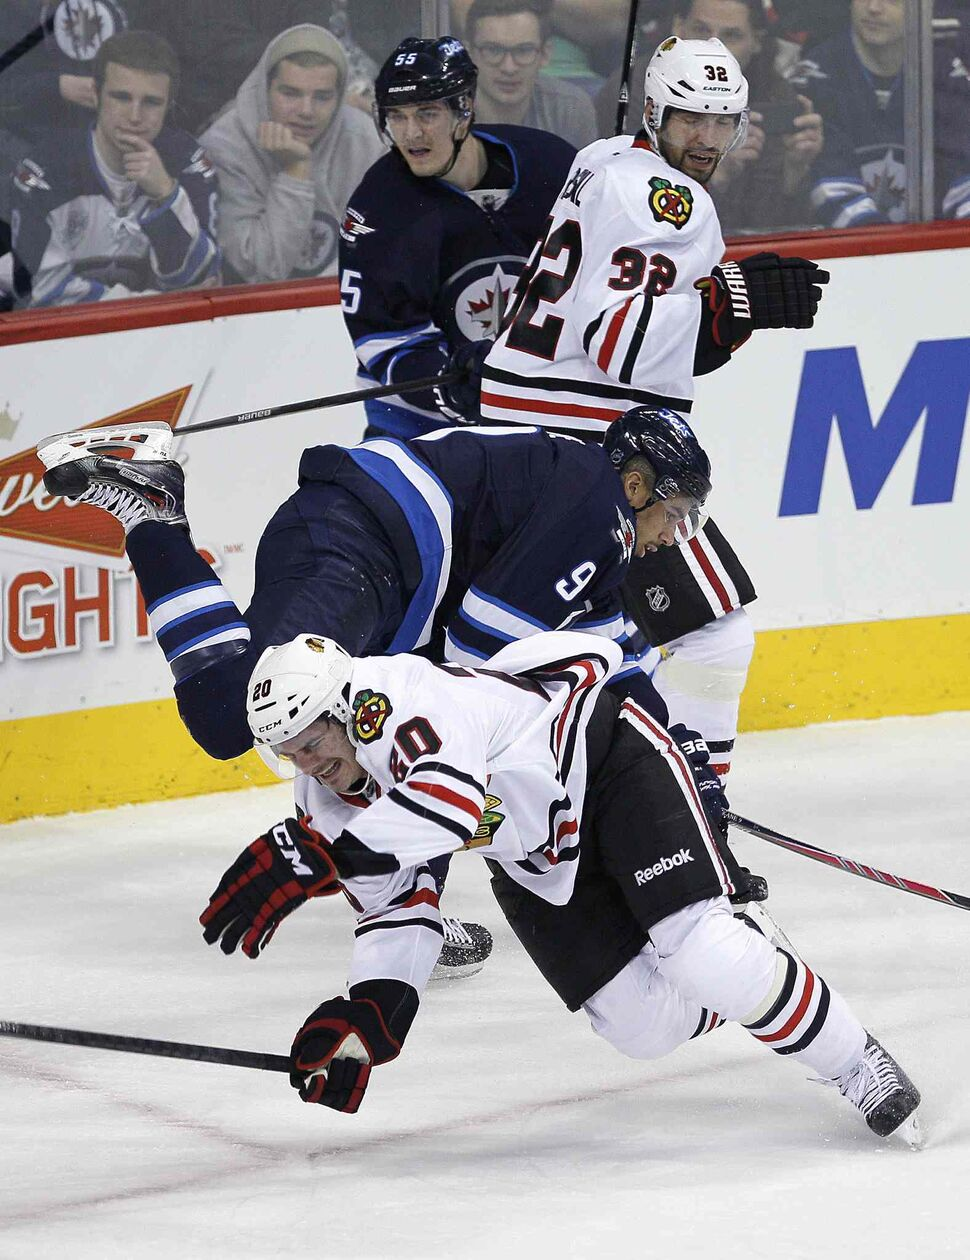 Winnipeg Jets forward Evander Kane (9) and Brandon Saad (20) of the Chicago Blackhawks collide as Mark Scheifele (55) and the Blackhawks' Michal Rozsival (32) look on during the first period. (JOHN WOODS / THE CANADIAN PRESS)